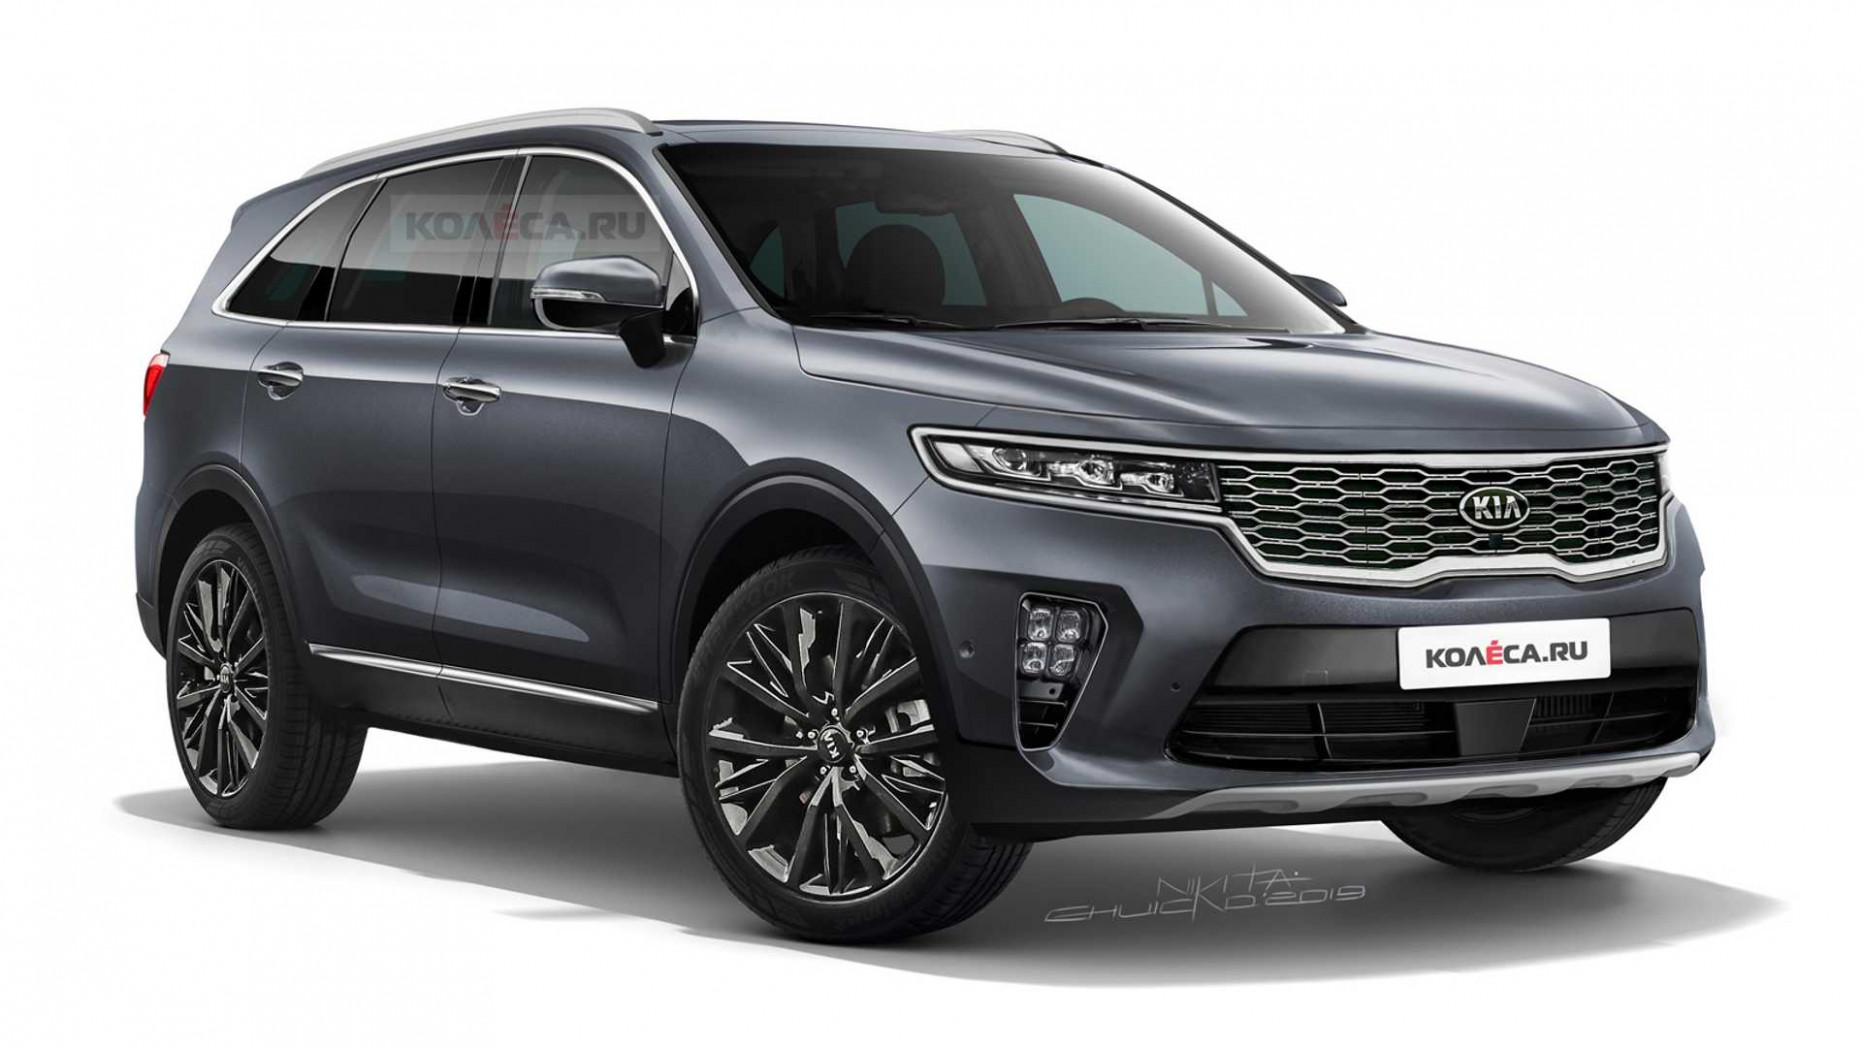 Performance and New Engine When Does 2022 Kia Sorento Come Out